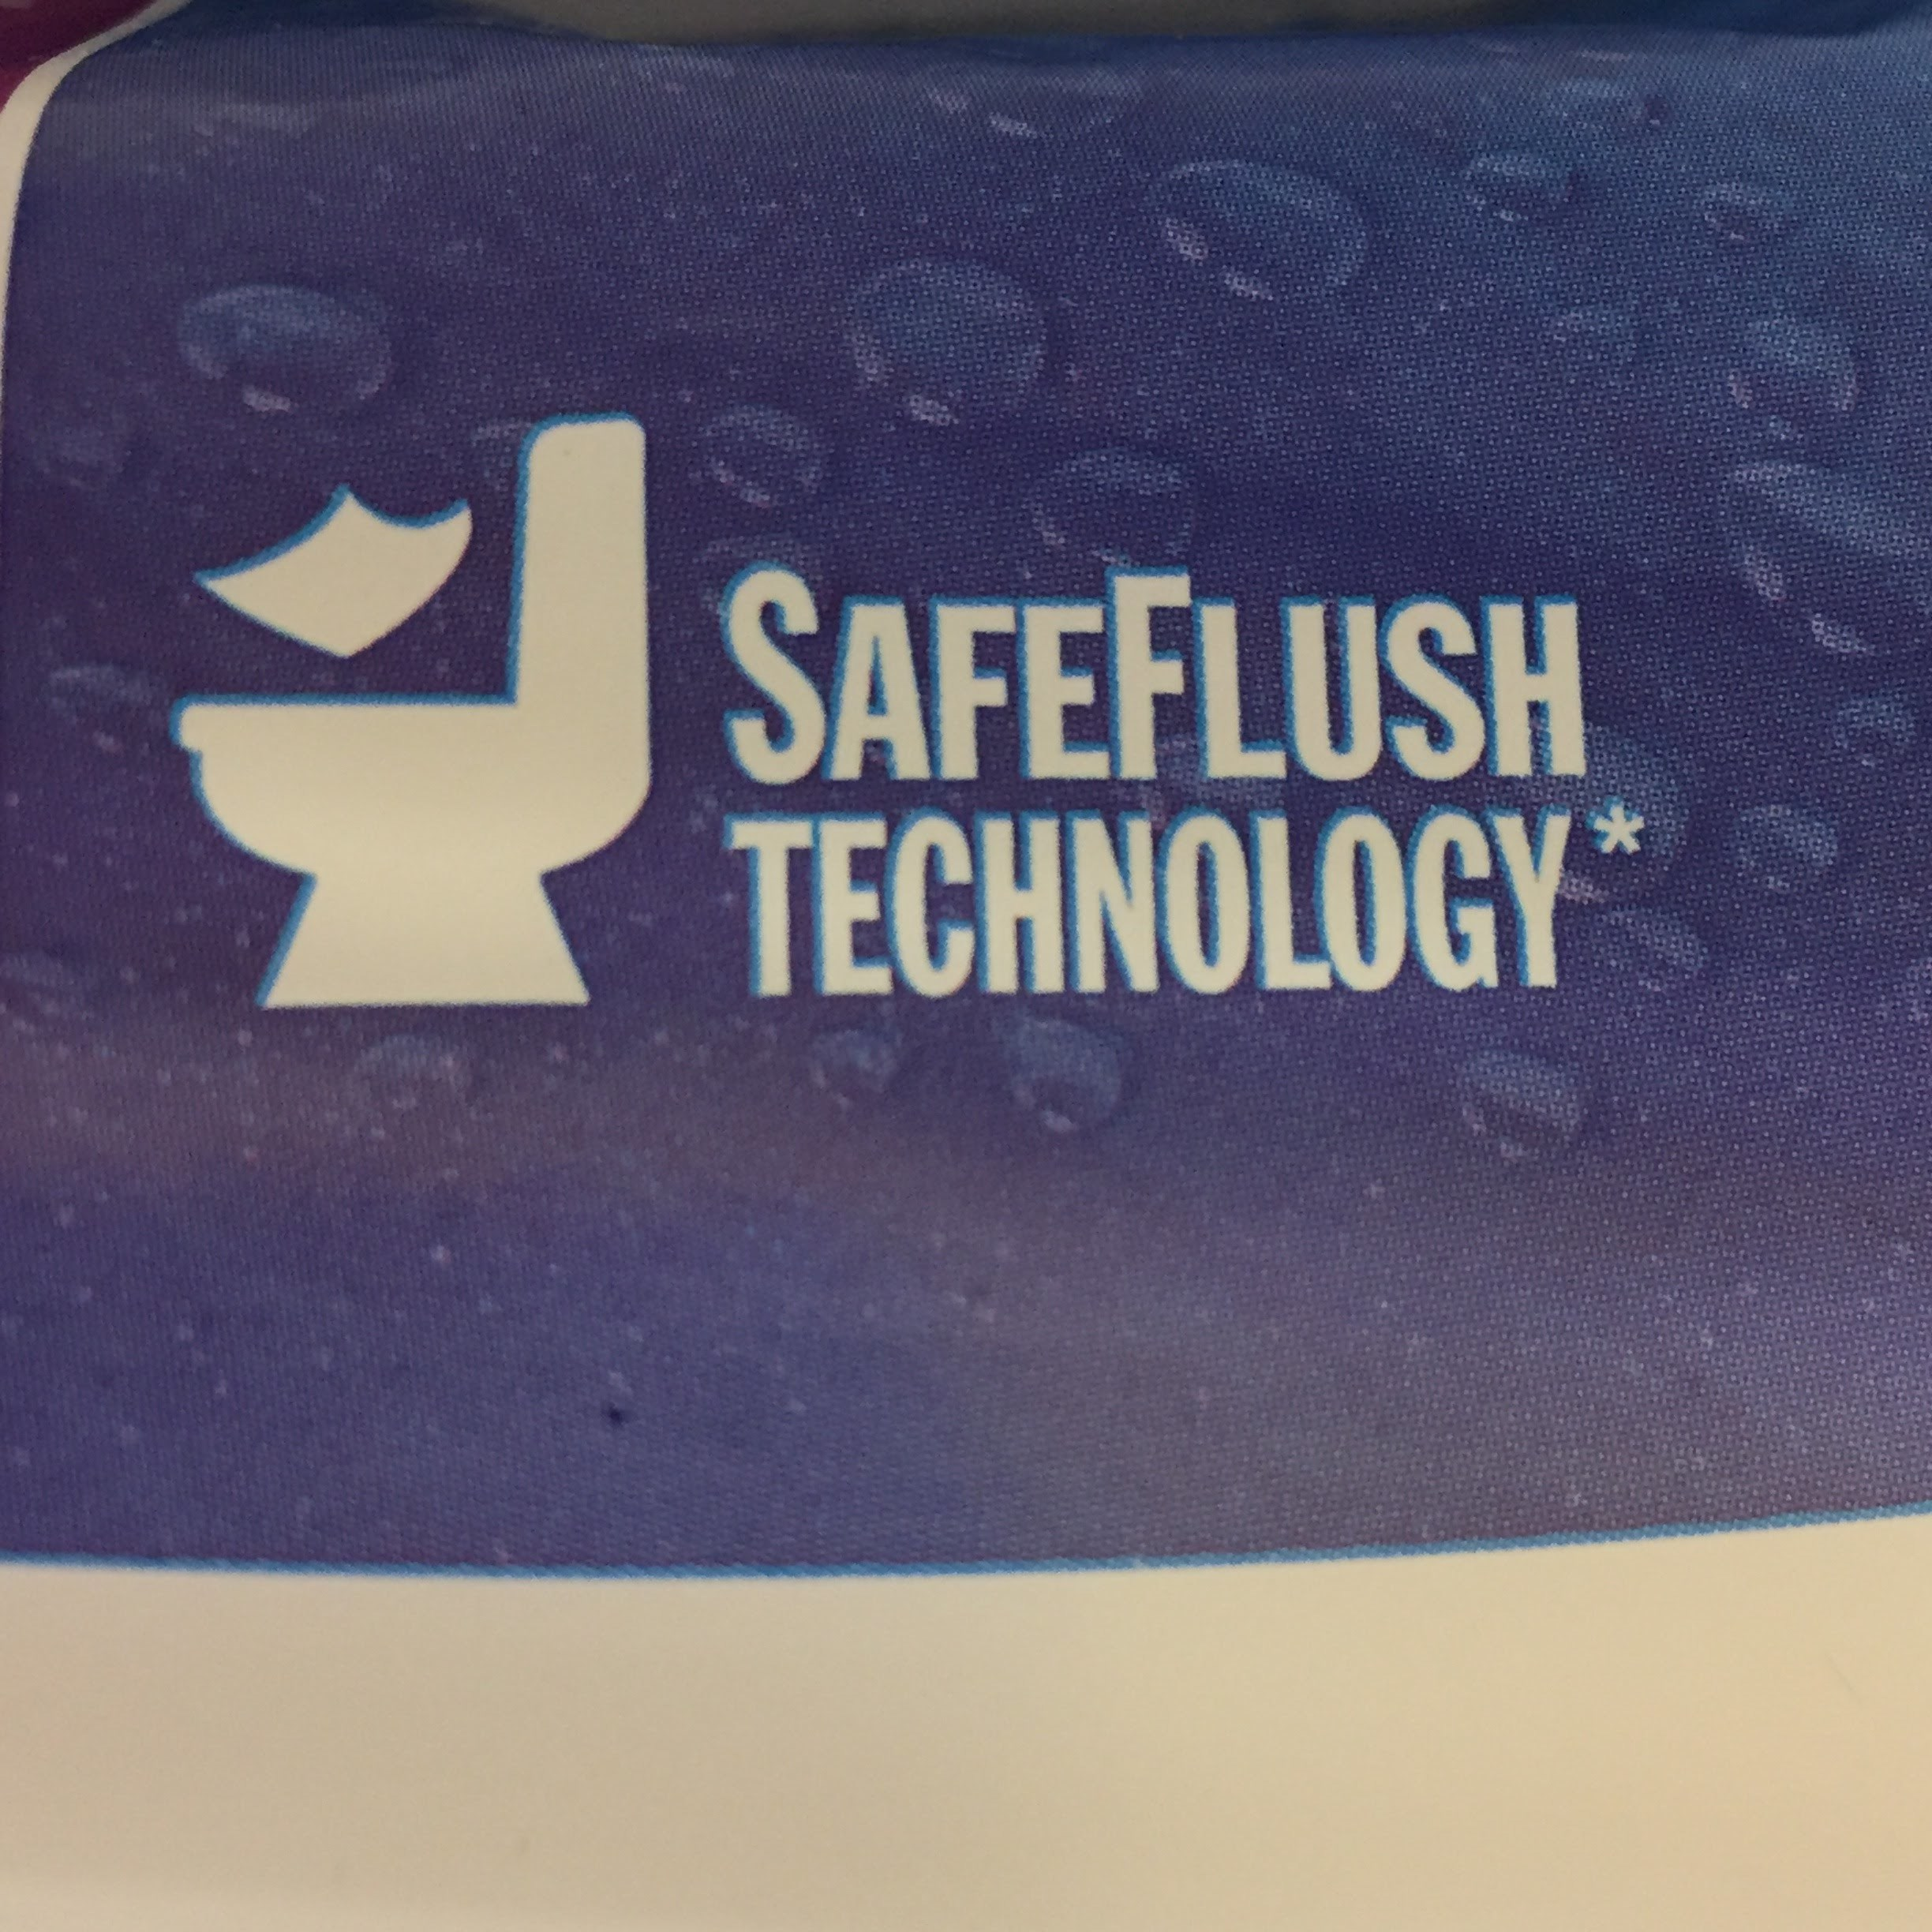 safe flush technology.JPG